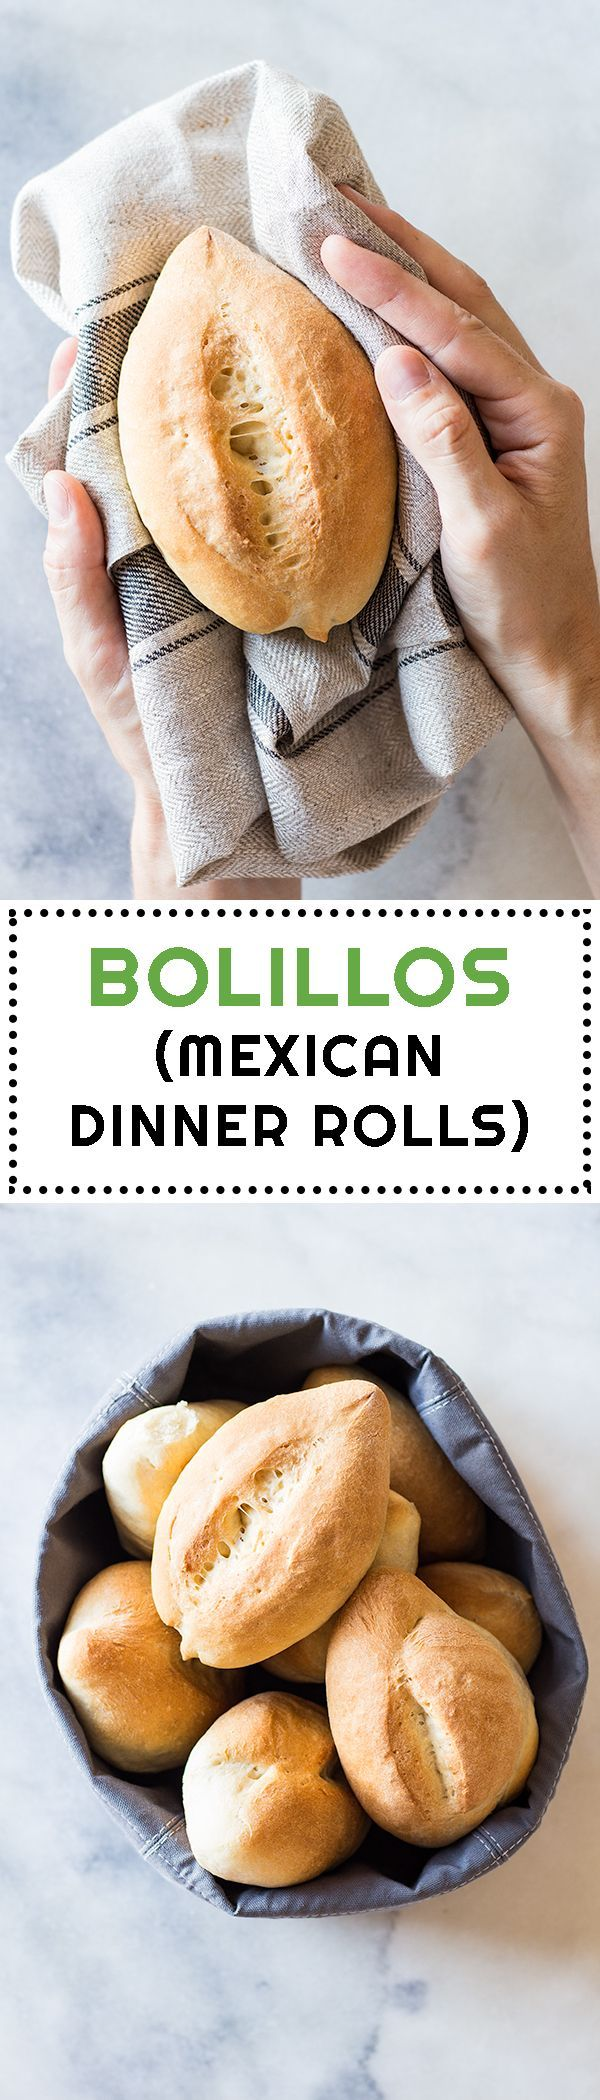 Mexican Dinner Rolls or Bolillos are the number 1 sold bread in Mexico City…